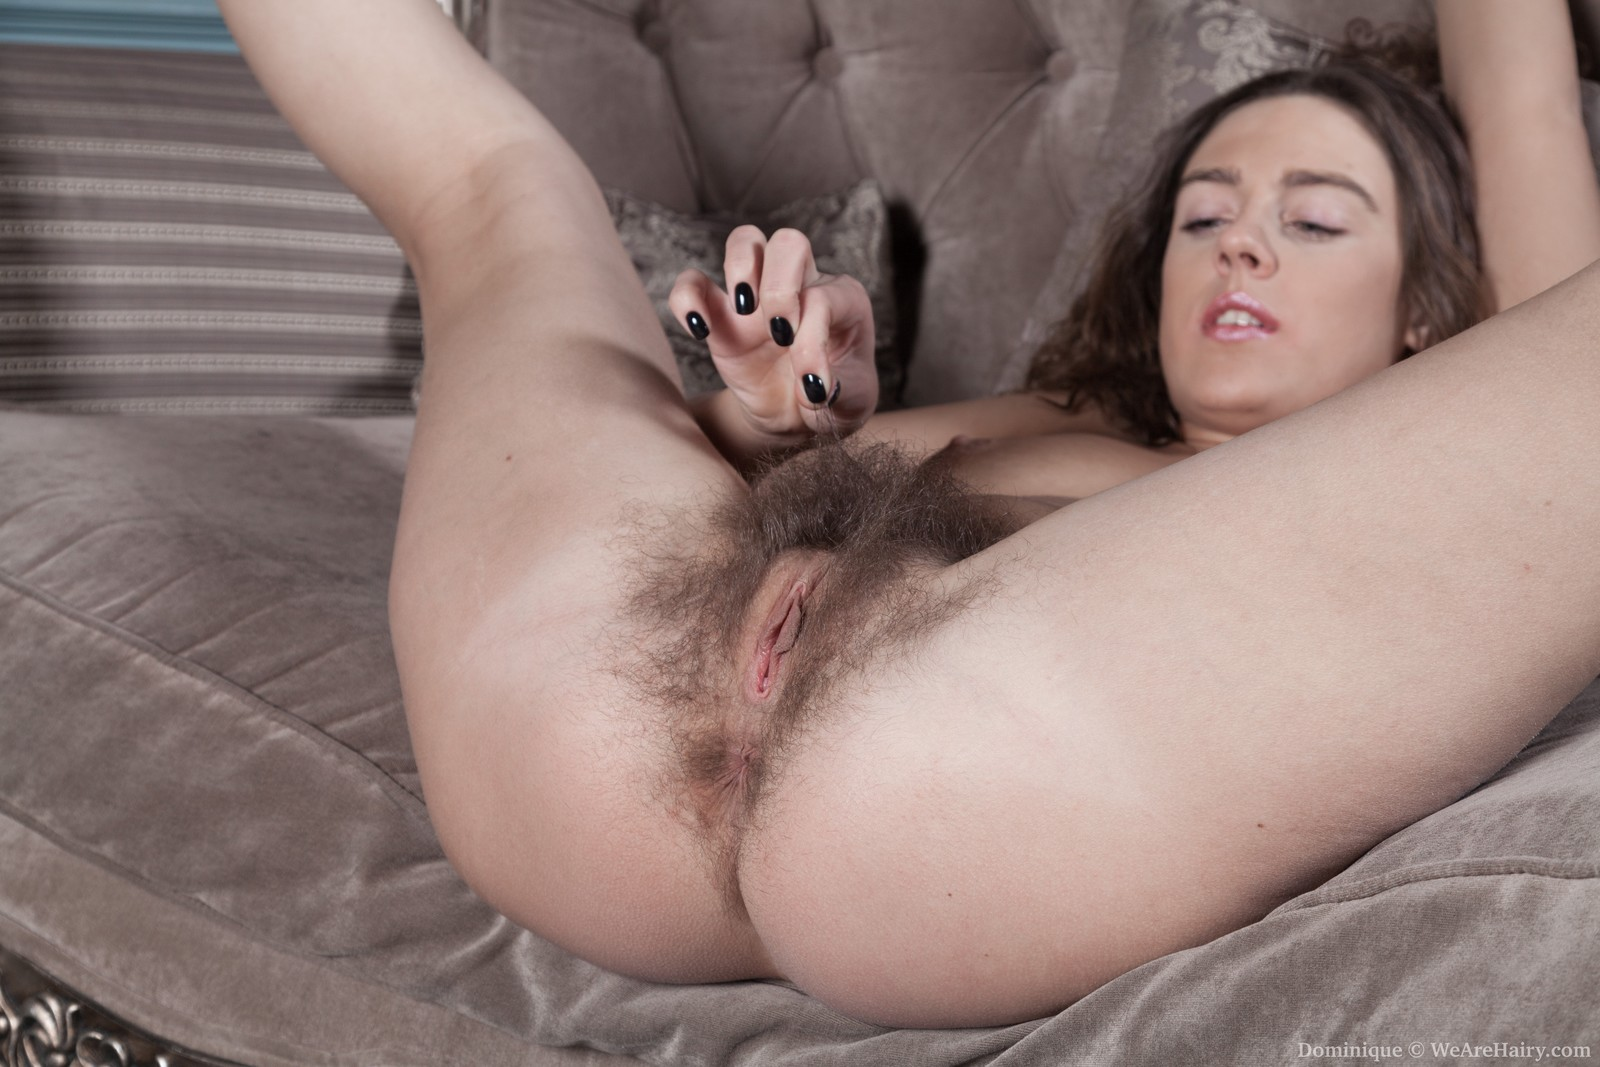 dominique-touches-her-hairy-body-on-a-couch12.jpg